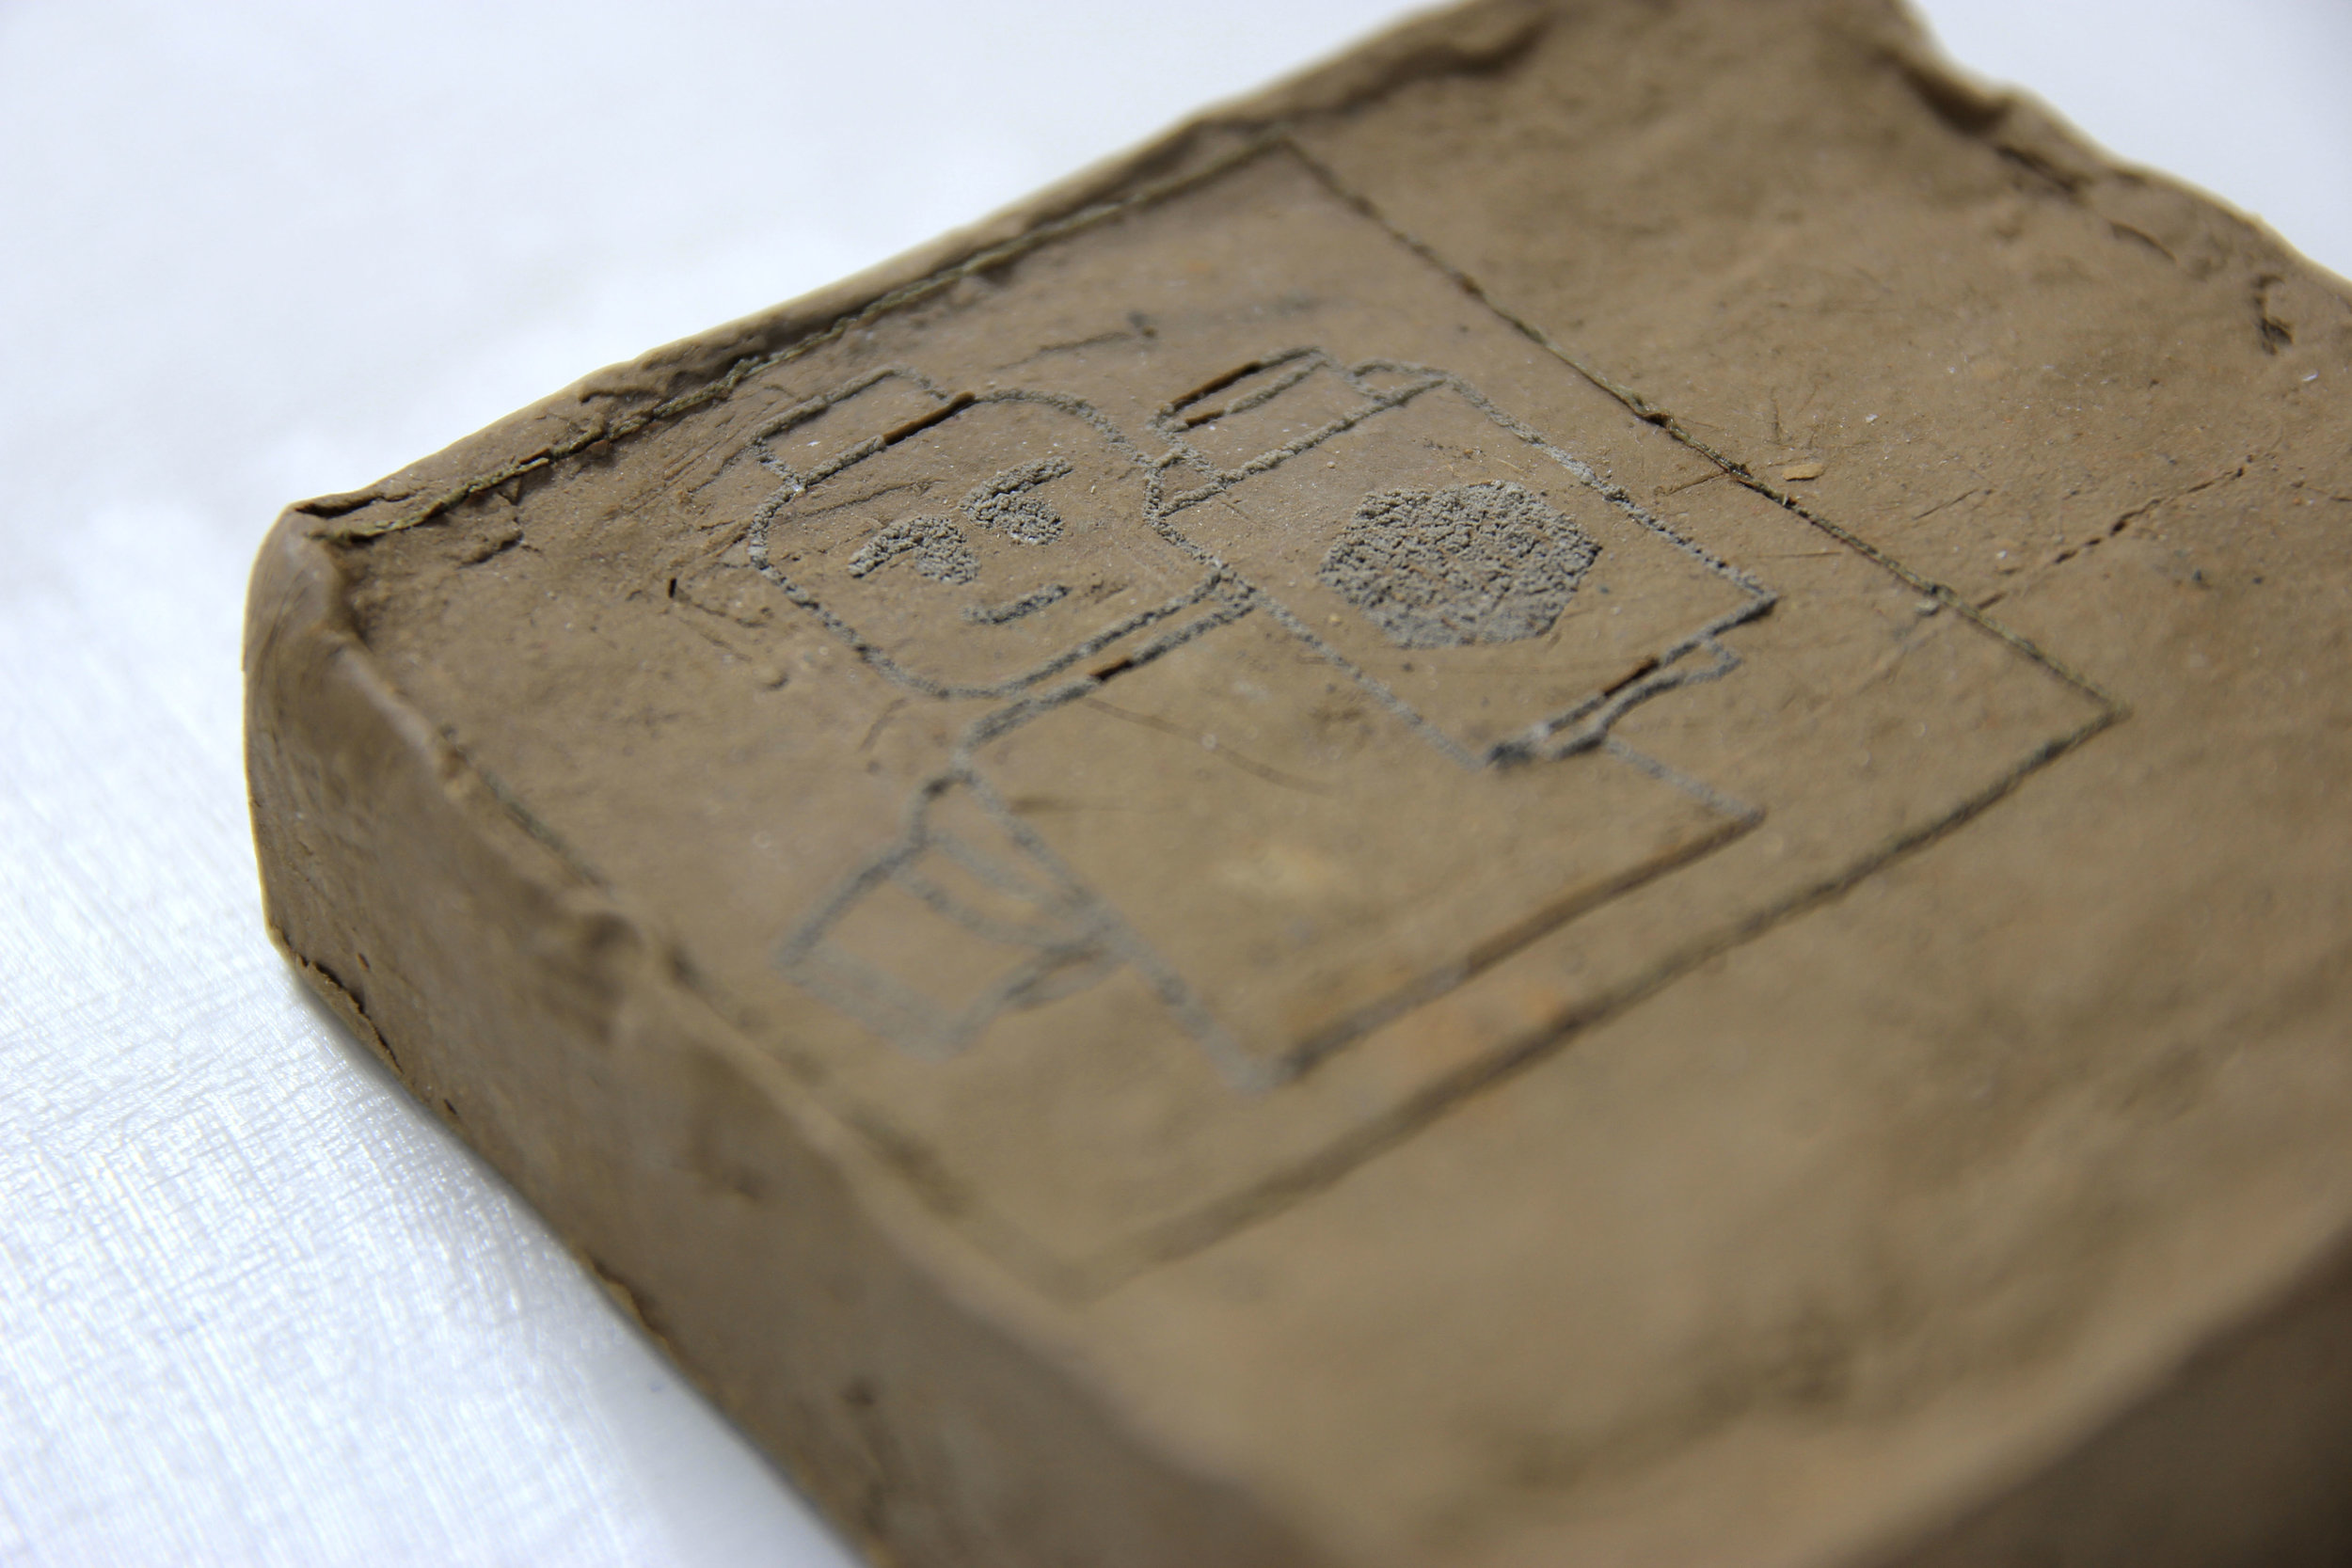 Laser etching onto dug-up mud, likely with a reasonably high clay content (and yes that is a LEGO figure).